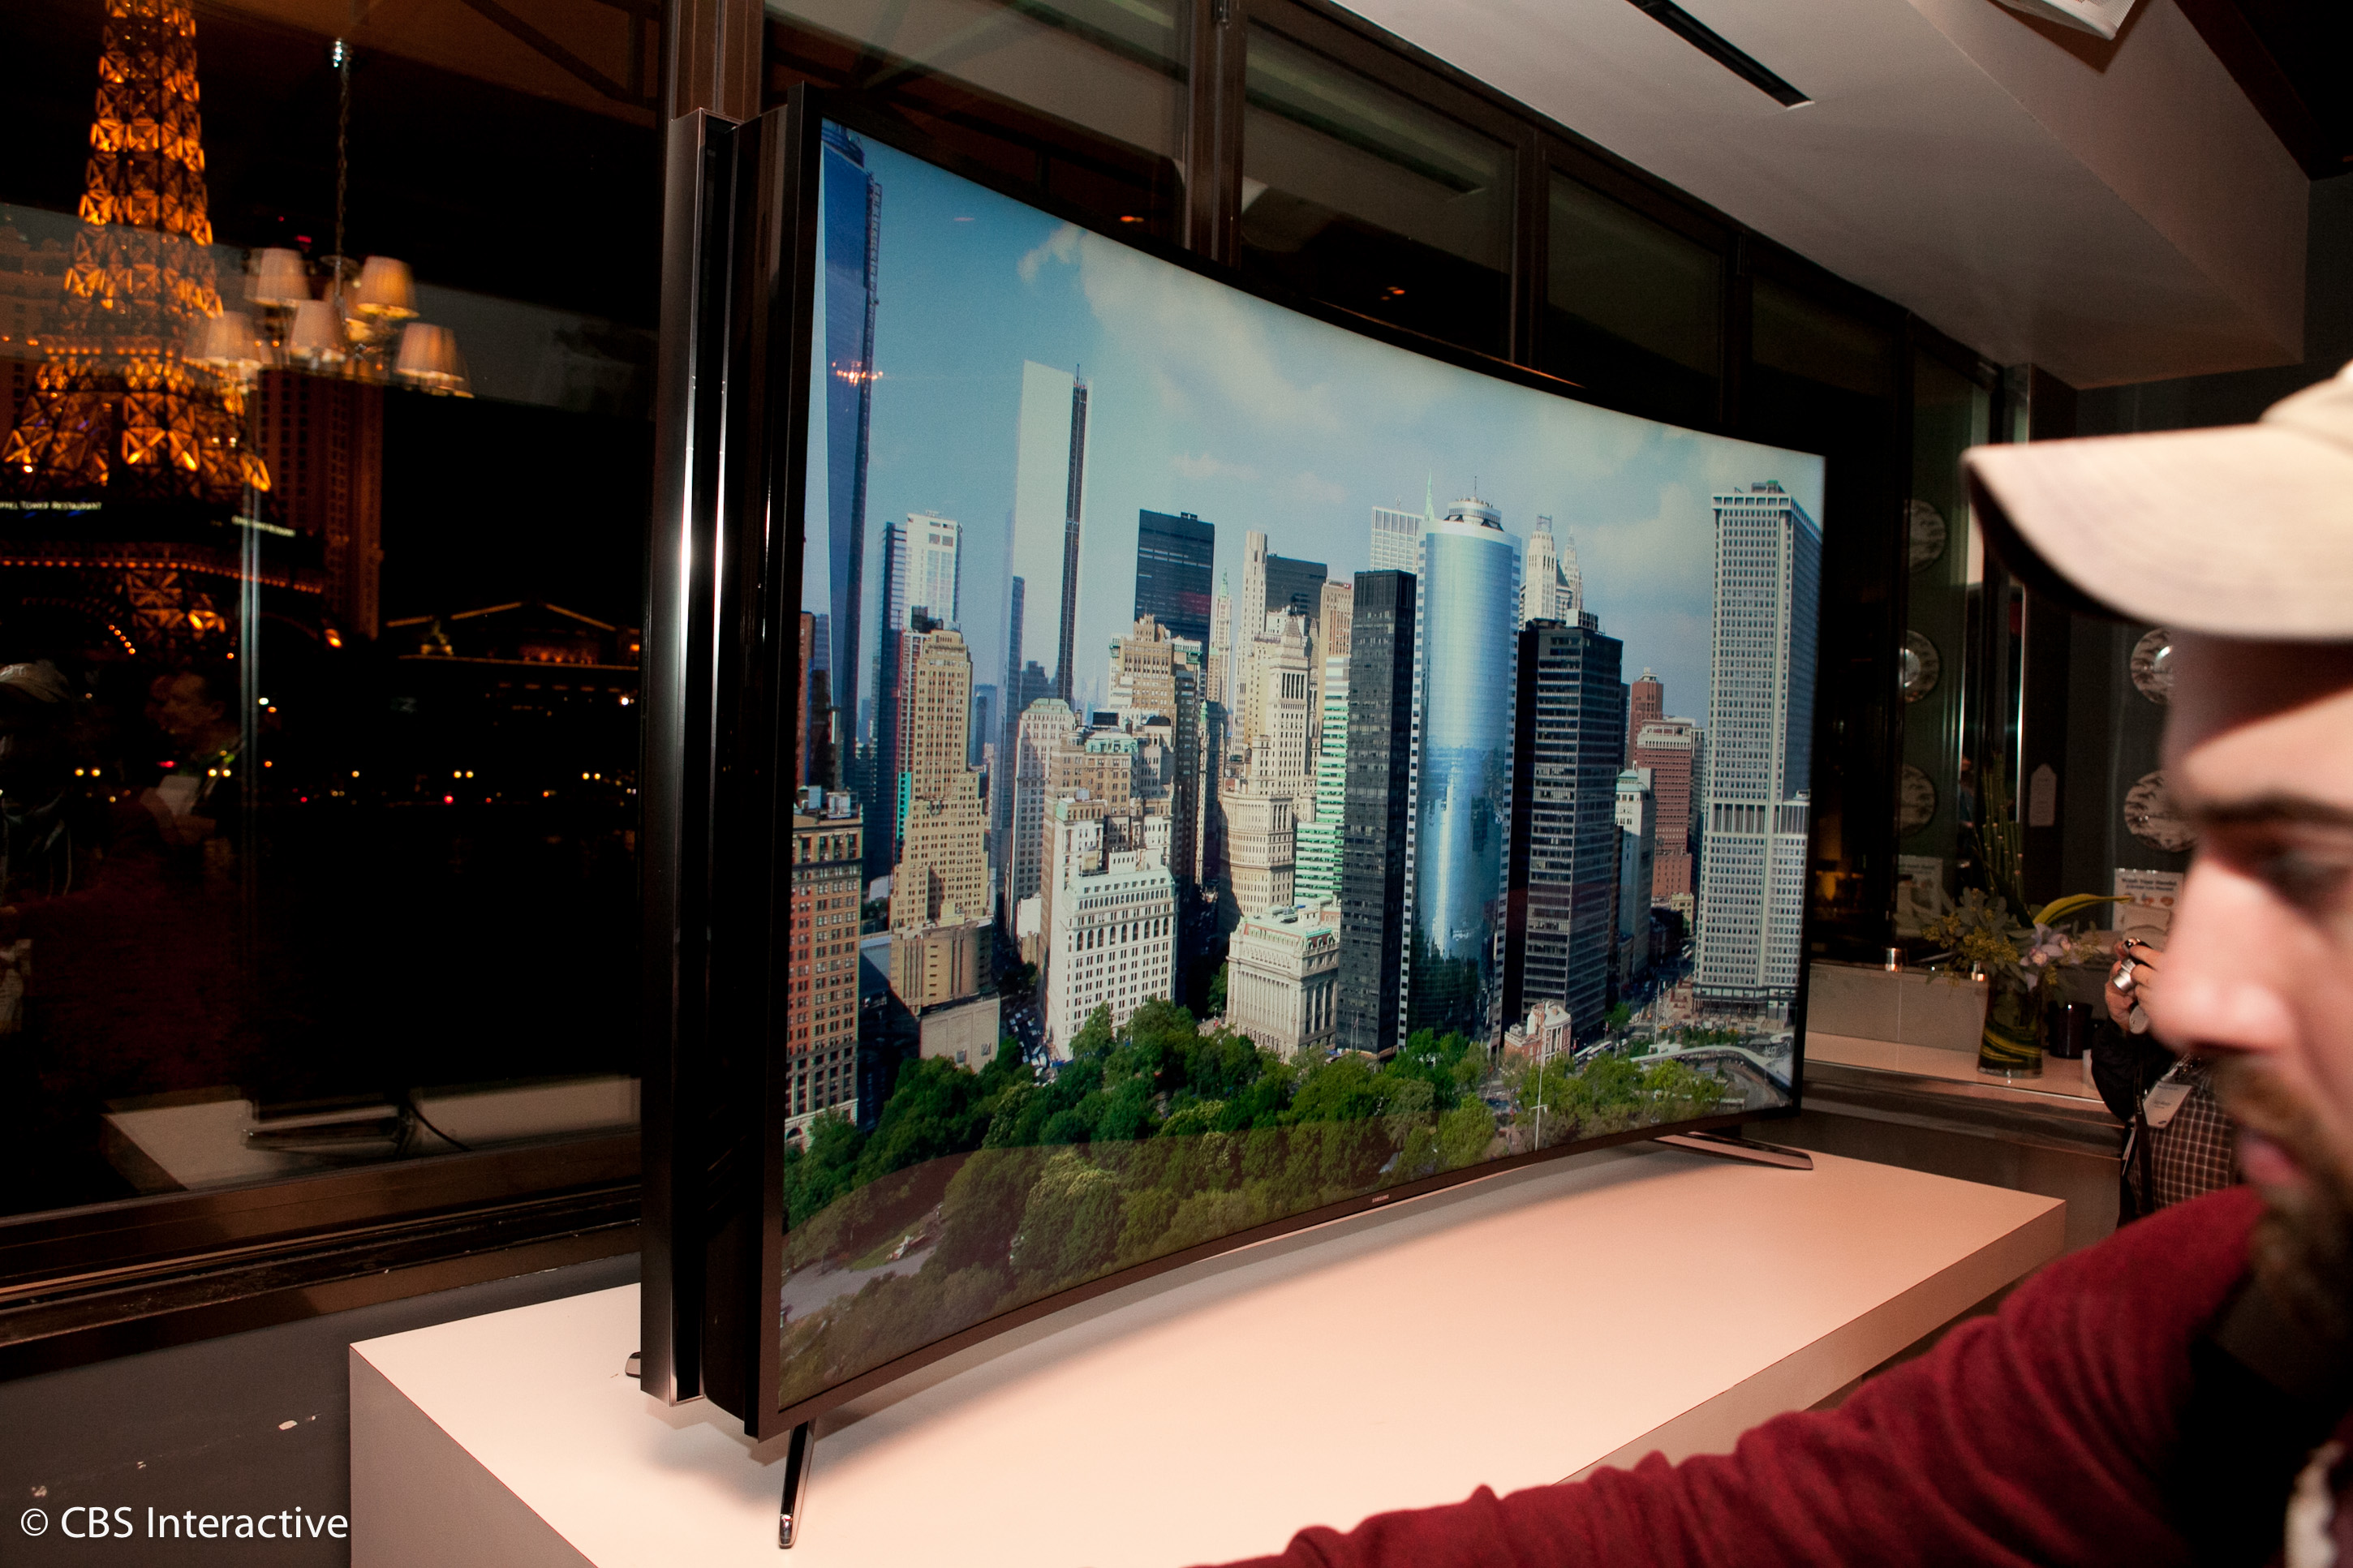 Samsung 85U9B bendable TV